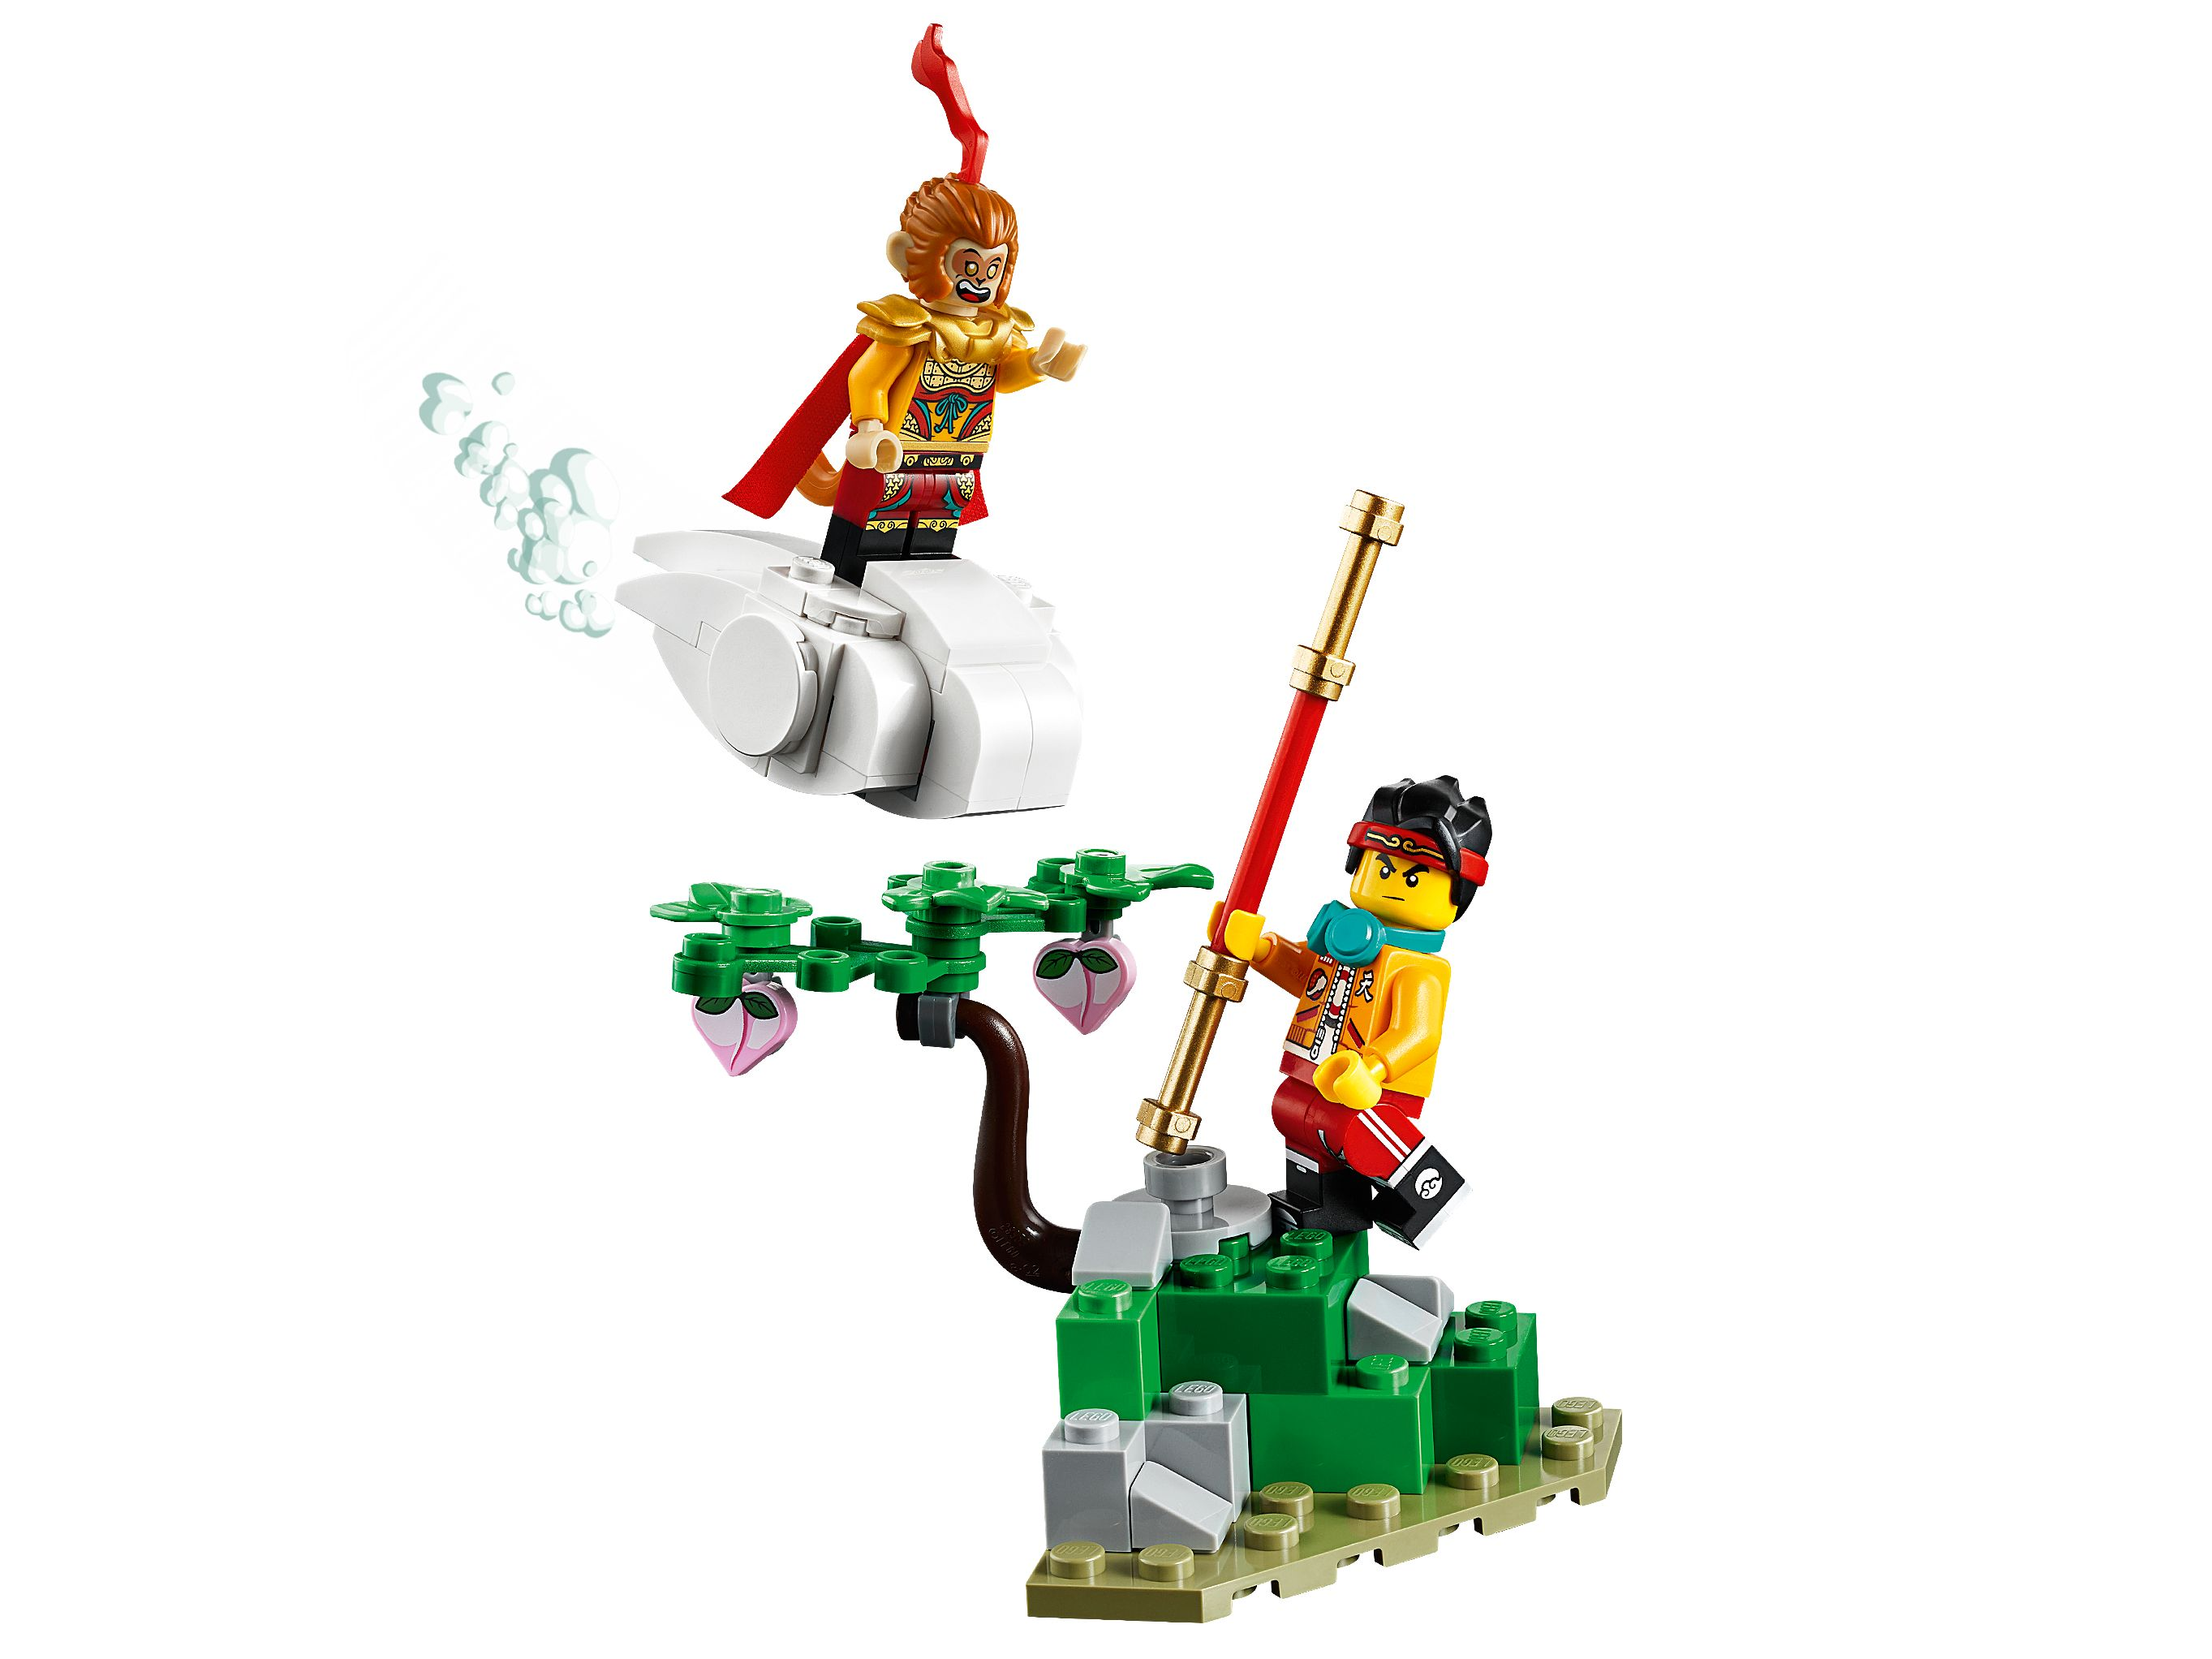 LEGO Monkie Kid 80012 Monkey King Mech LEGO_80012_alt7.jpg